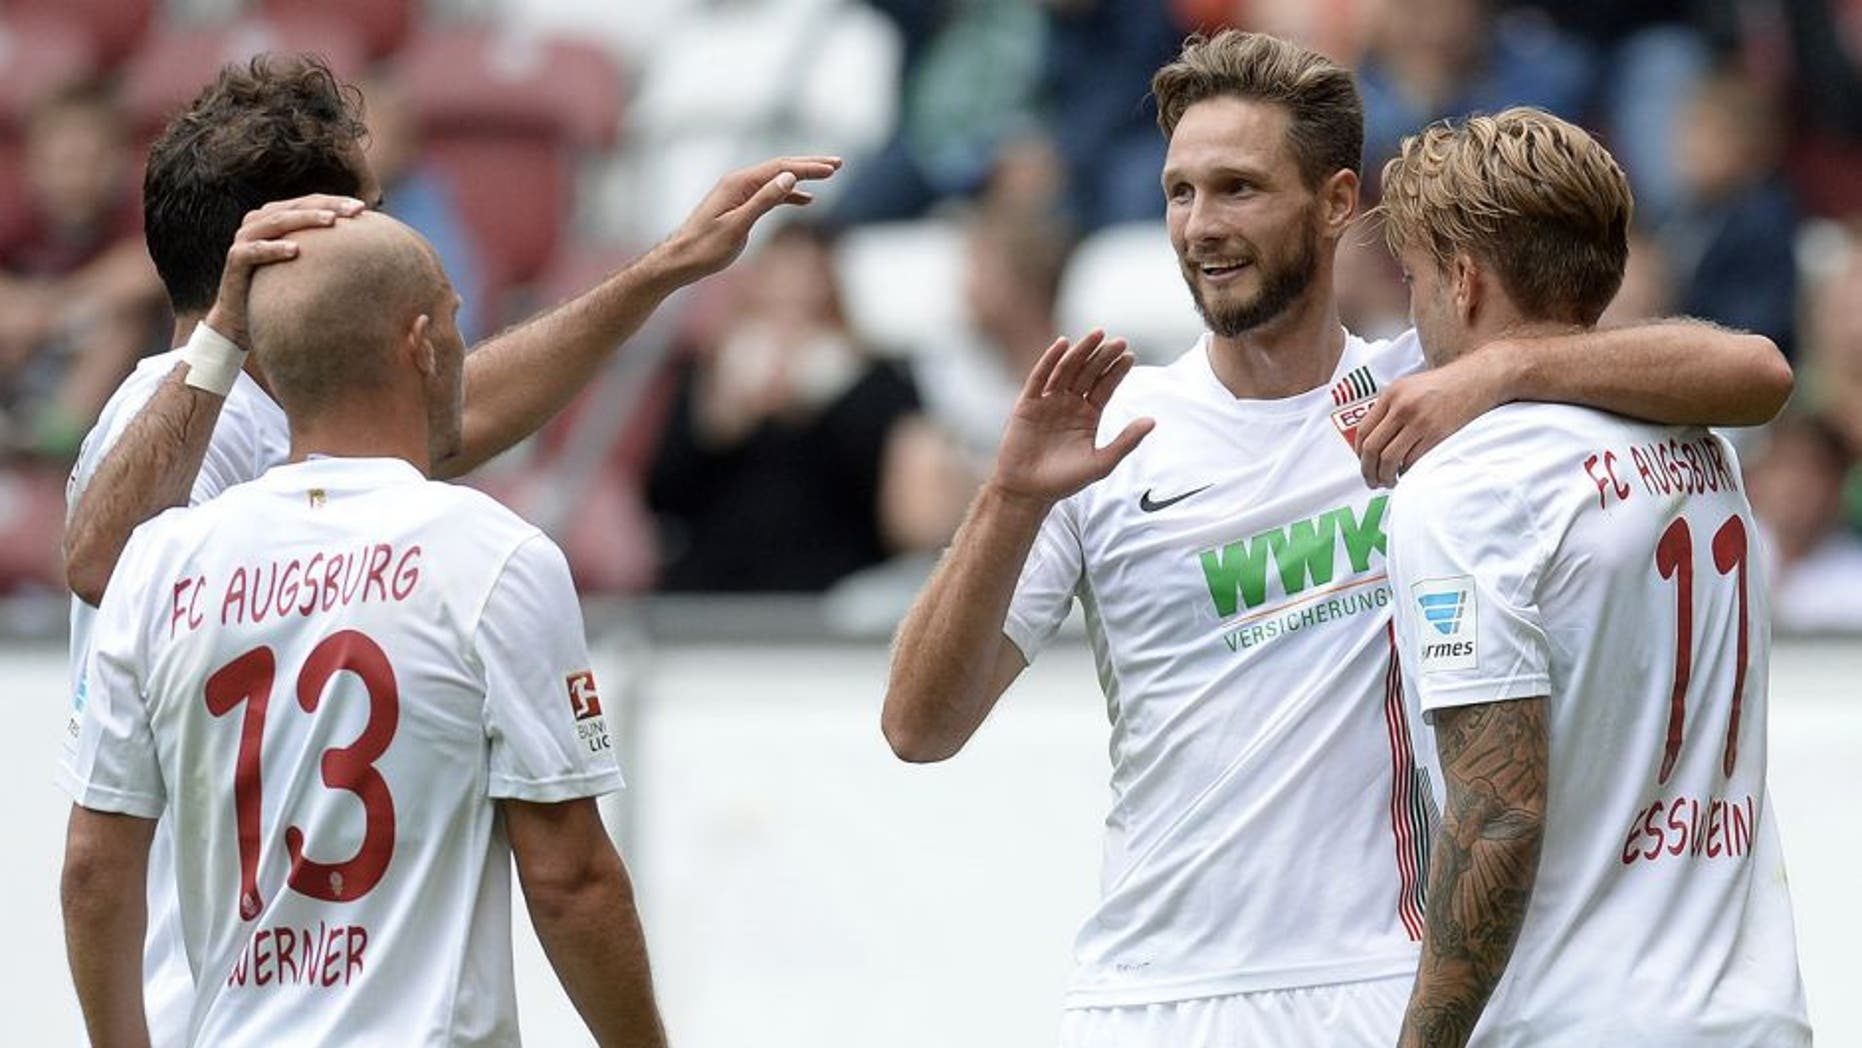 (L-R) Augsburg's Turkish midfielder Halil Altintop, Augsburg's midfielder Tobias Werner, Augsburg's Serbian striker Tim Matavz and Augsburg's midfielder Alexander Esswein celebrate after the second goal during a friendly football match between German first division Bundesliga team FC Augsburg and French first league football team FC Toulouse in Augsburg, southern Germany, on August 1, 2015. AFP PHOTO / CHRISTOF STACHE (Photo credit should read CHRISTOF STACHE/AFP/Getty Images)